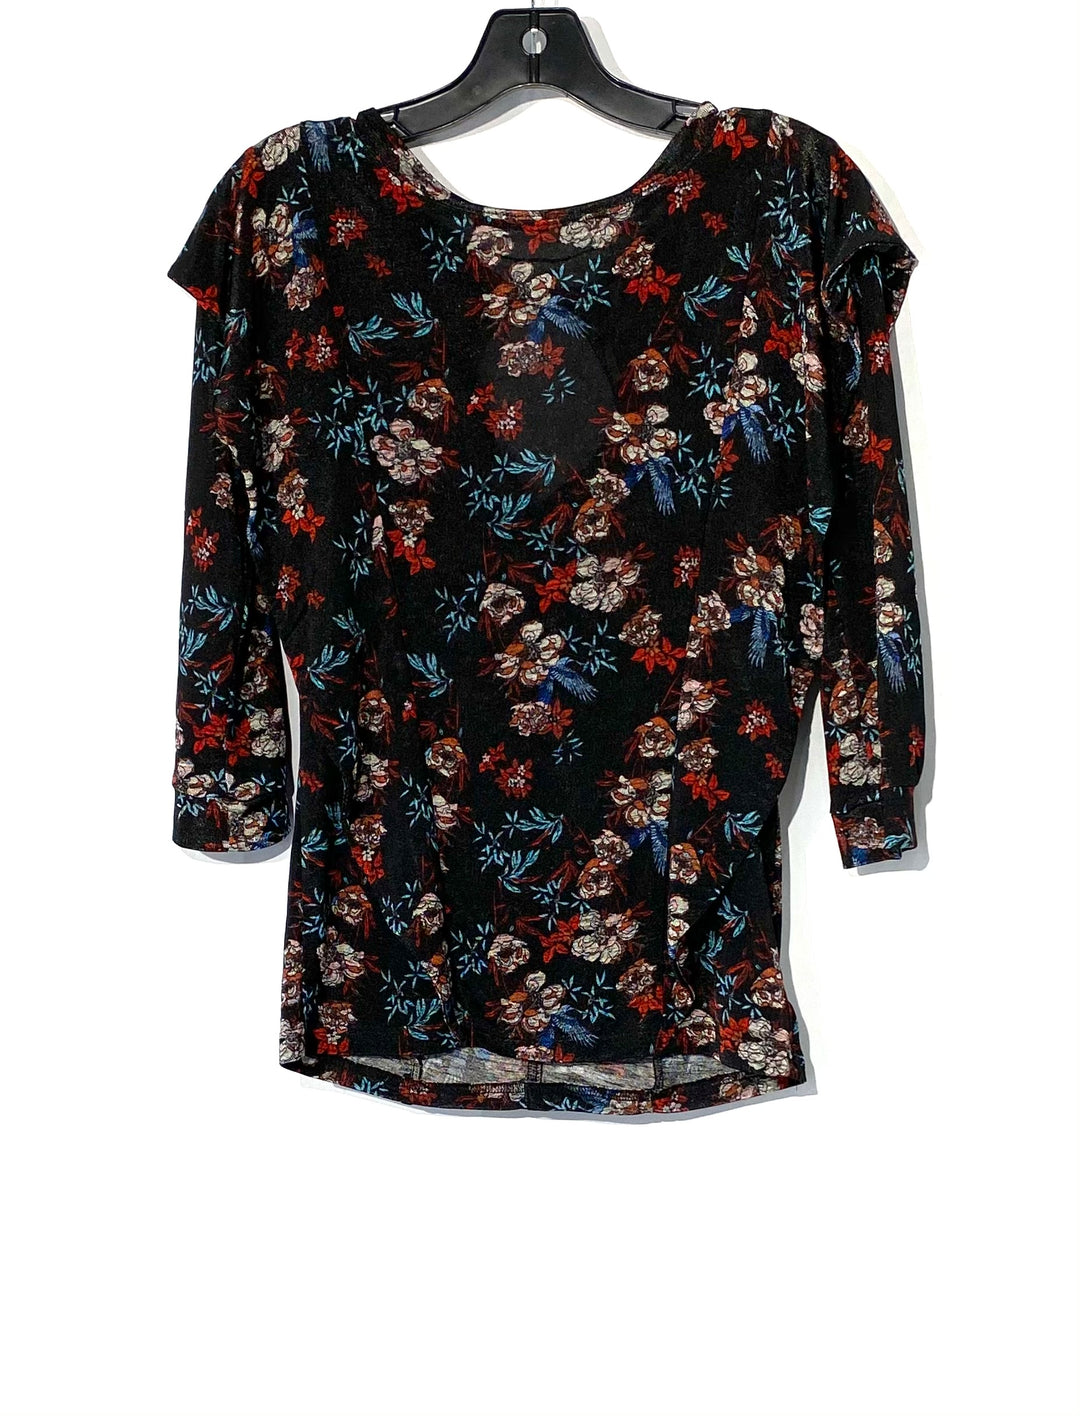 Primary Photo - BRAND: FREE PEOPLE <BR>STYLE: TOP 3/4 LONG SLEEVE <BR>COLOR: FLORAL <BR>SIZE: XS <BR>SKU: 262-26275-70593